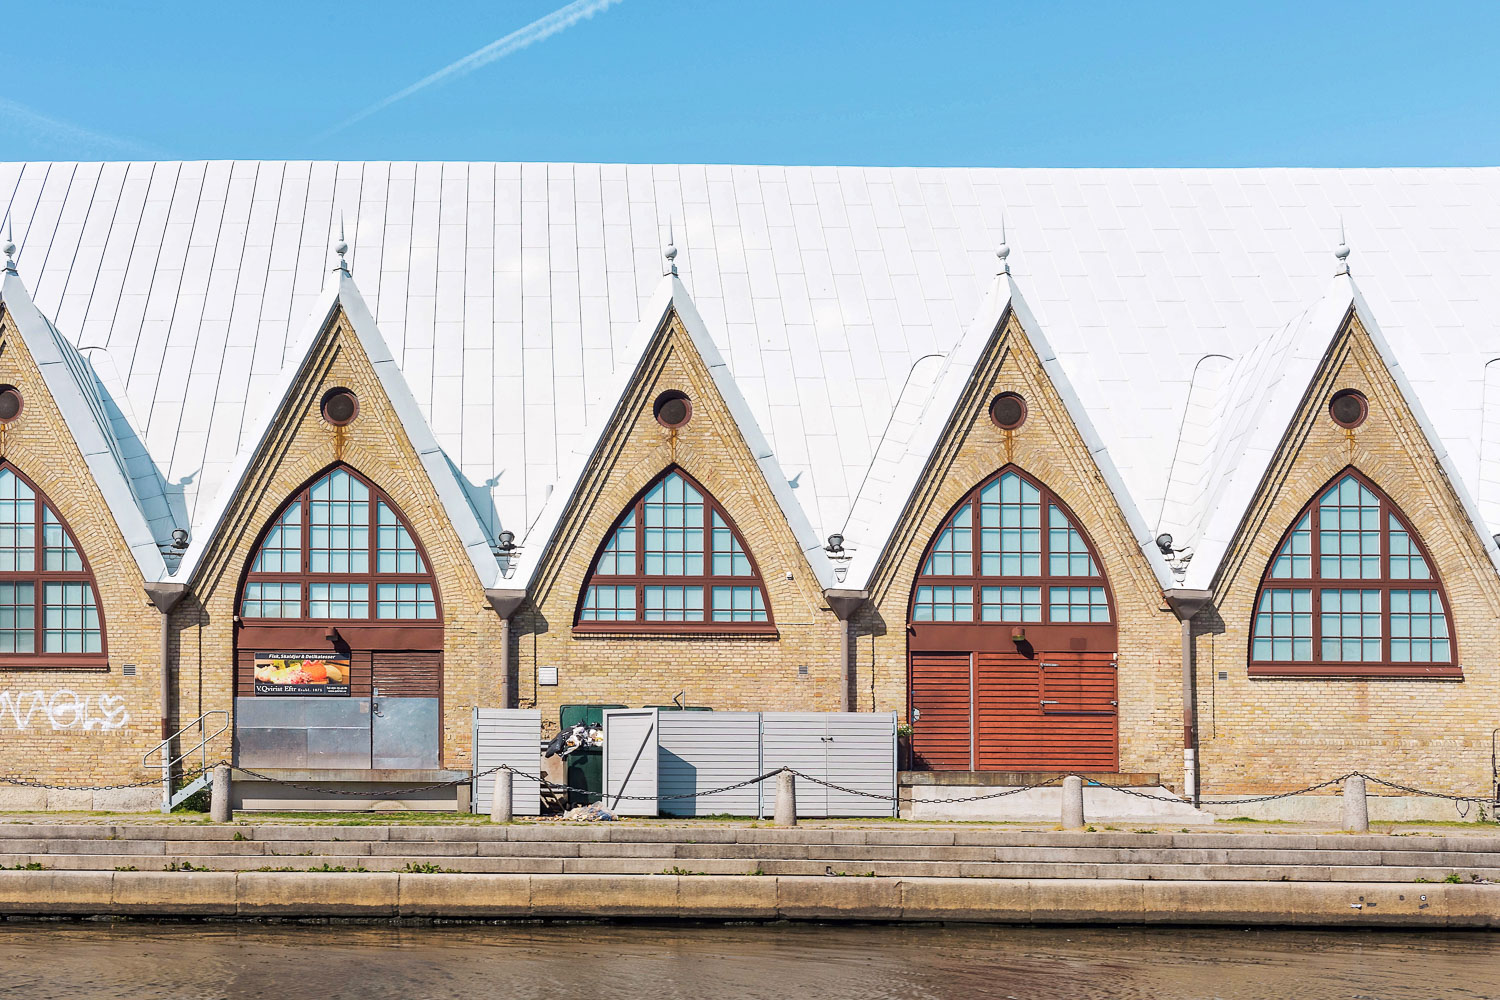 Feskekorka ('fish church') - a photogenic indoor fish market in Gothenburg built in 1874